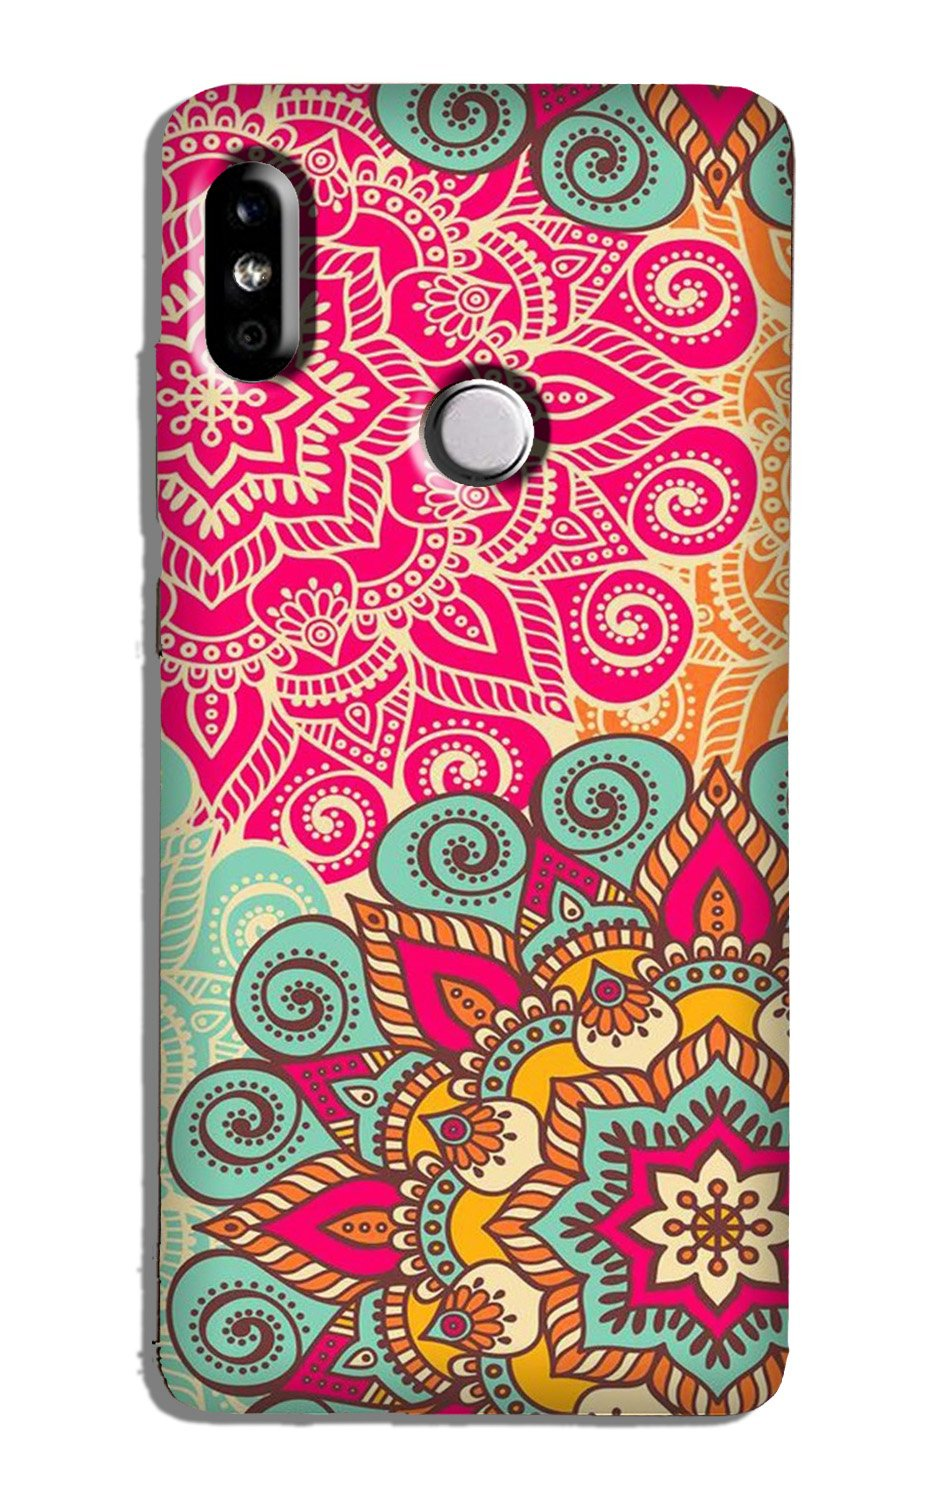 Rangoli art Case for Redmi Note 5 Pro